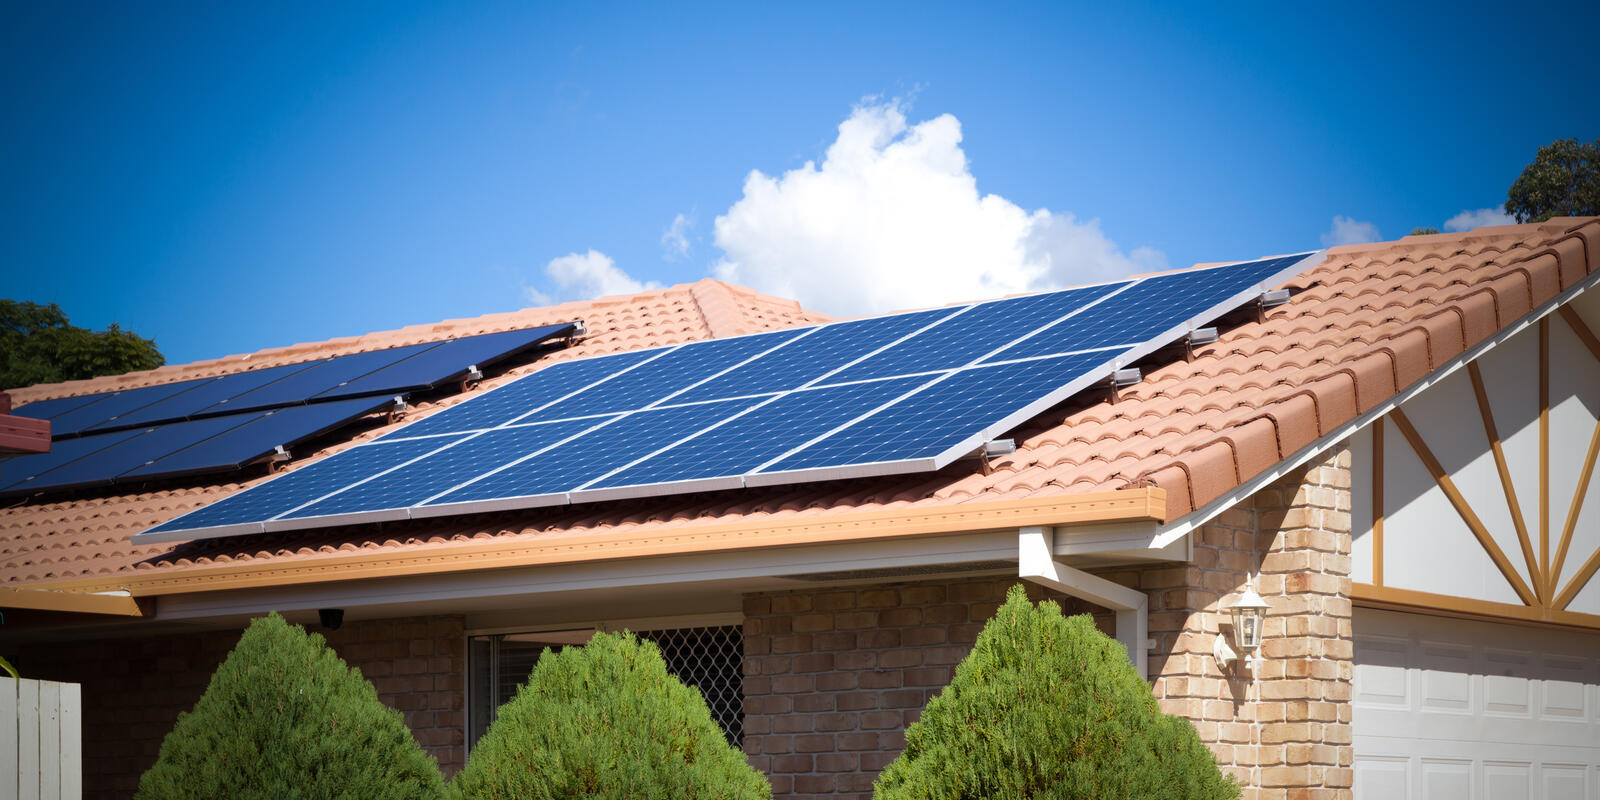 Solar panels on suburban house roof